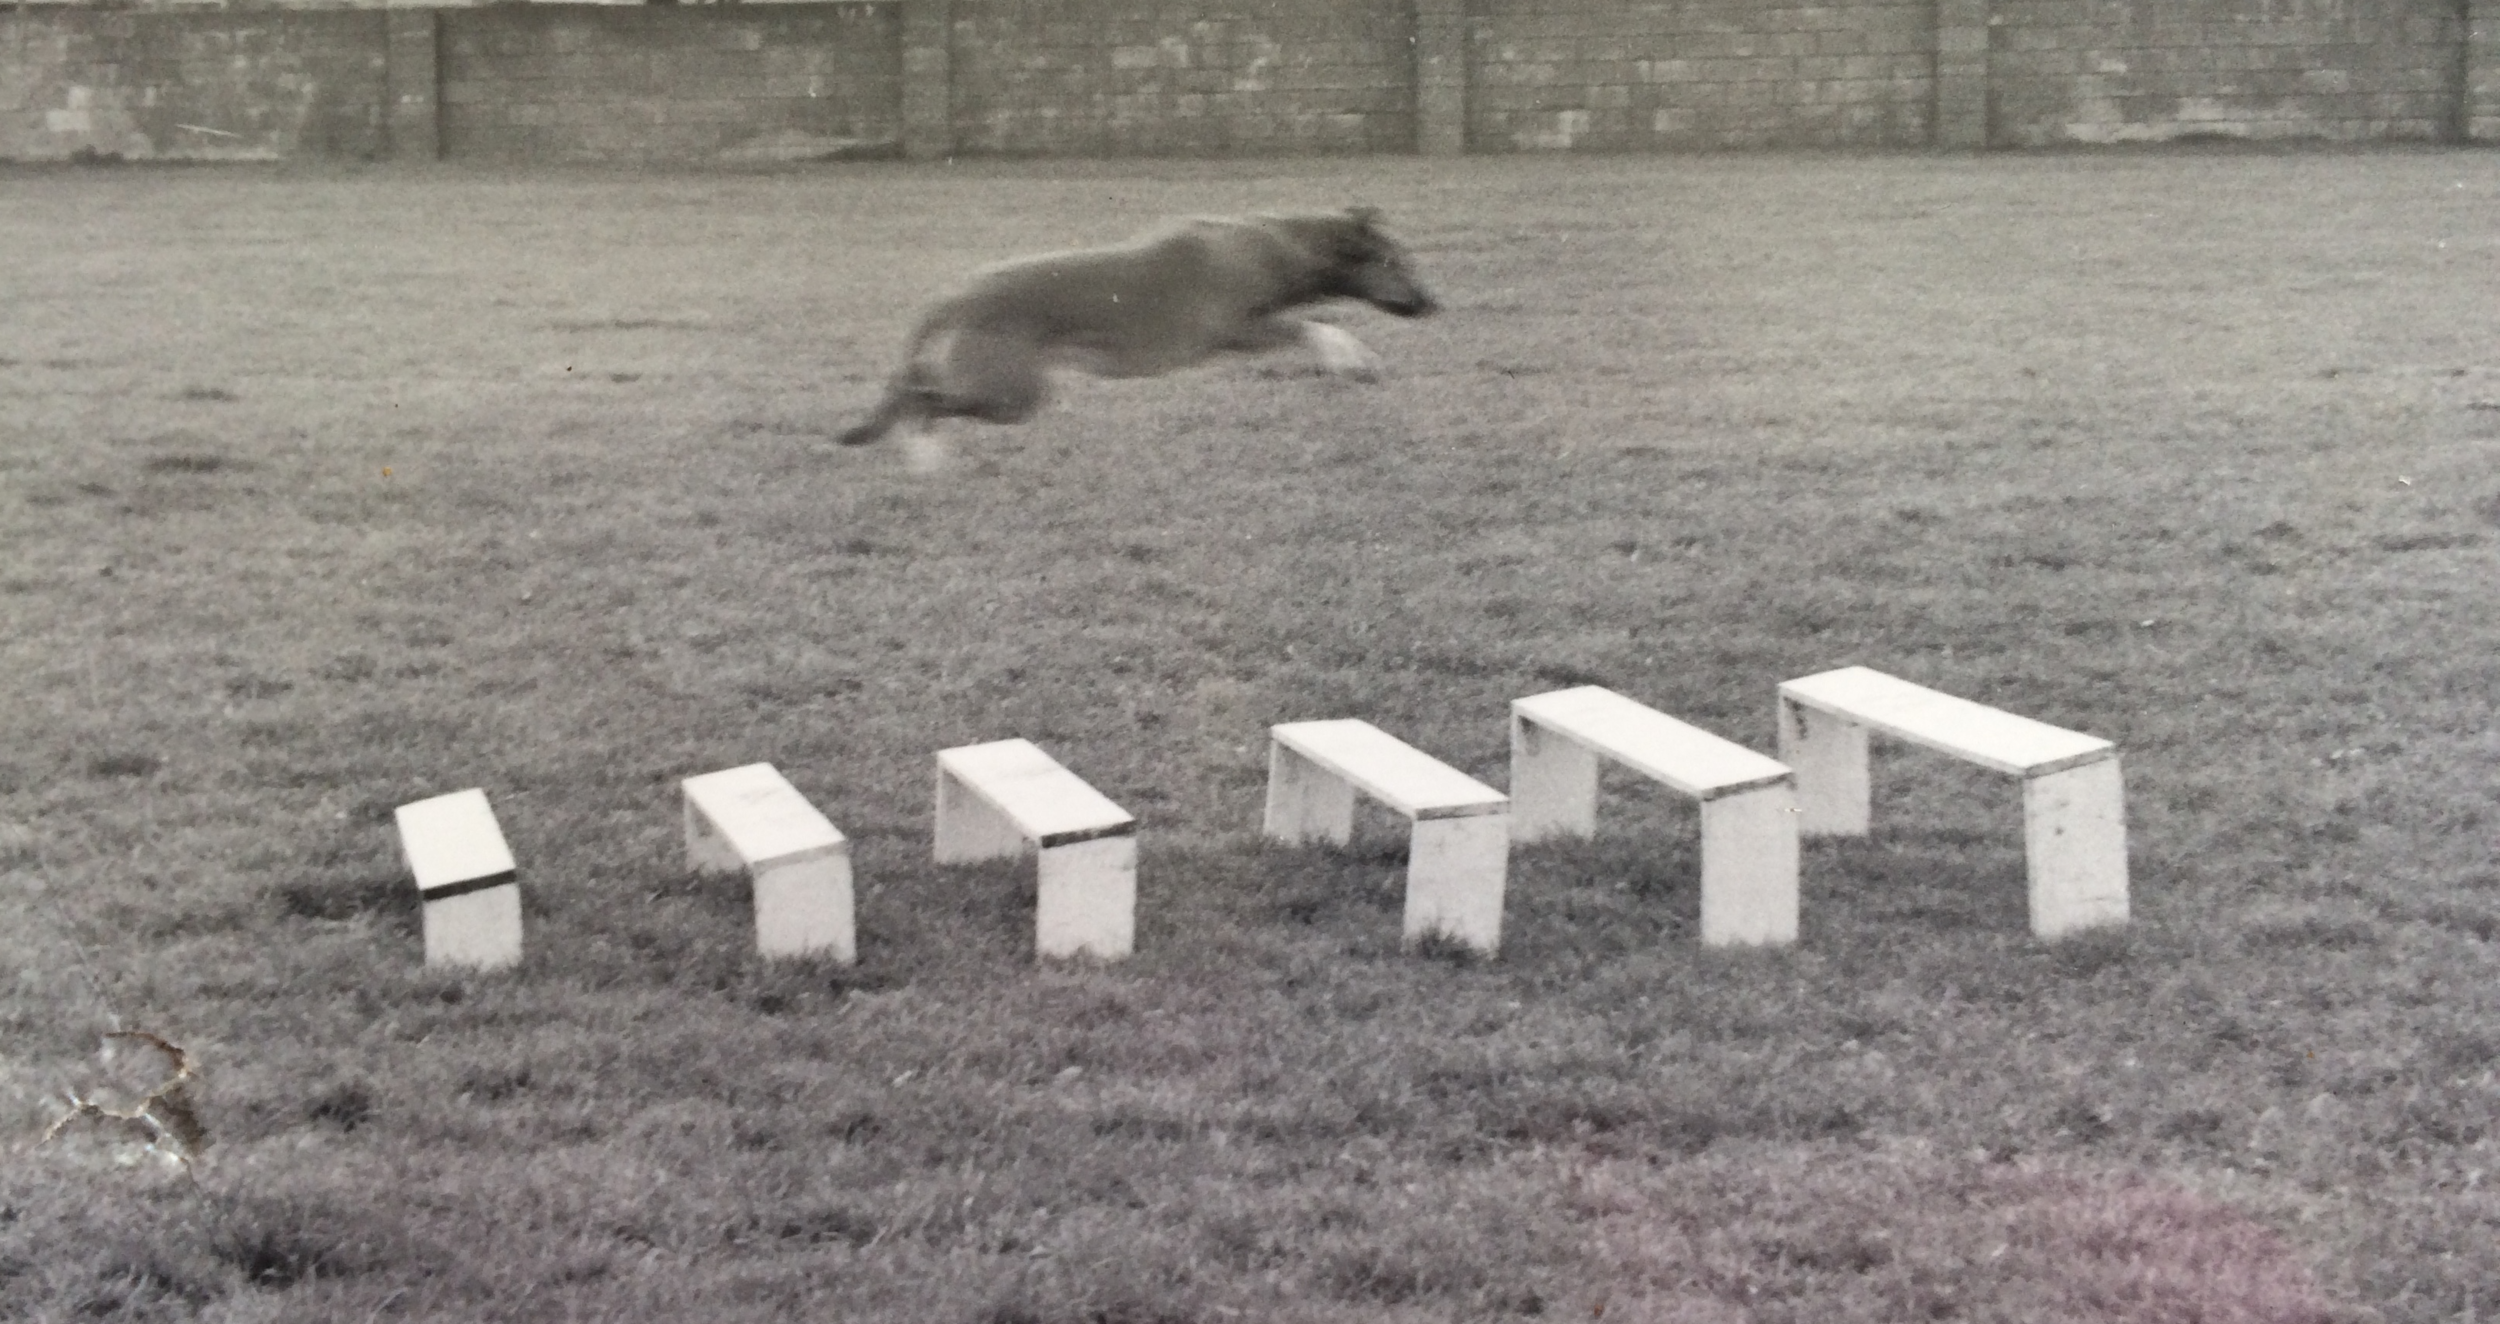 Little Poppy clears the 9 foot long jump with ease at a competition.